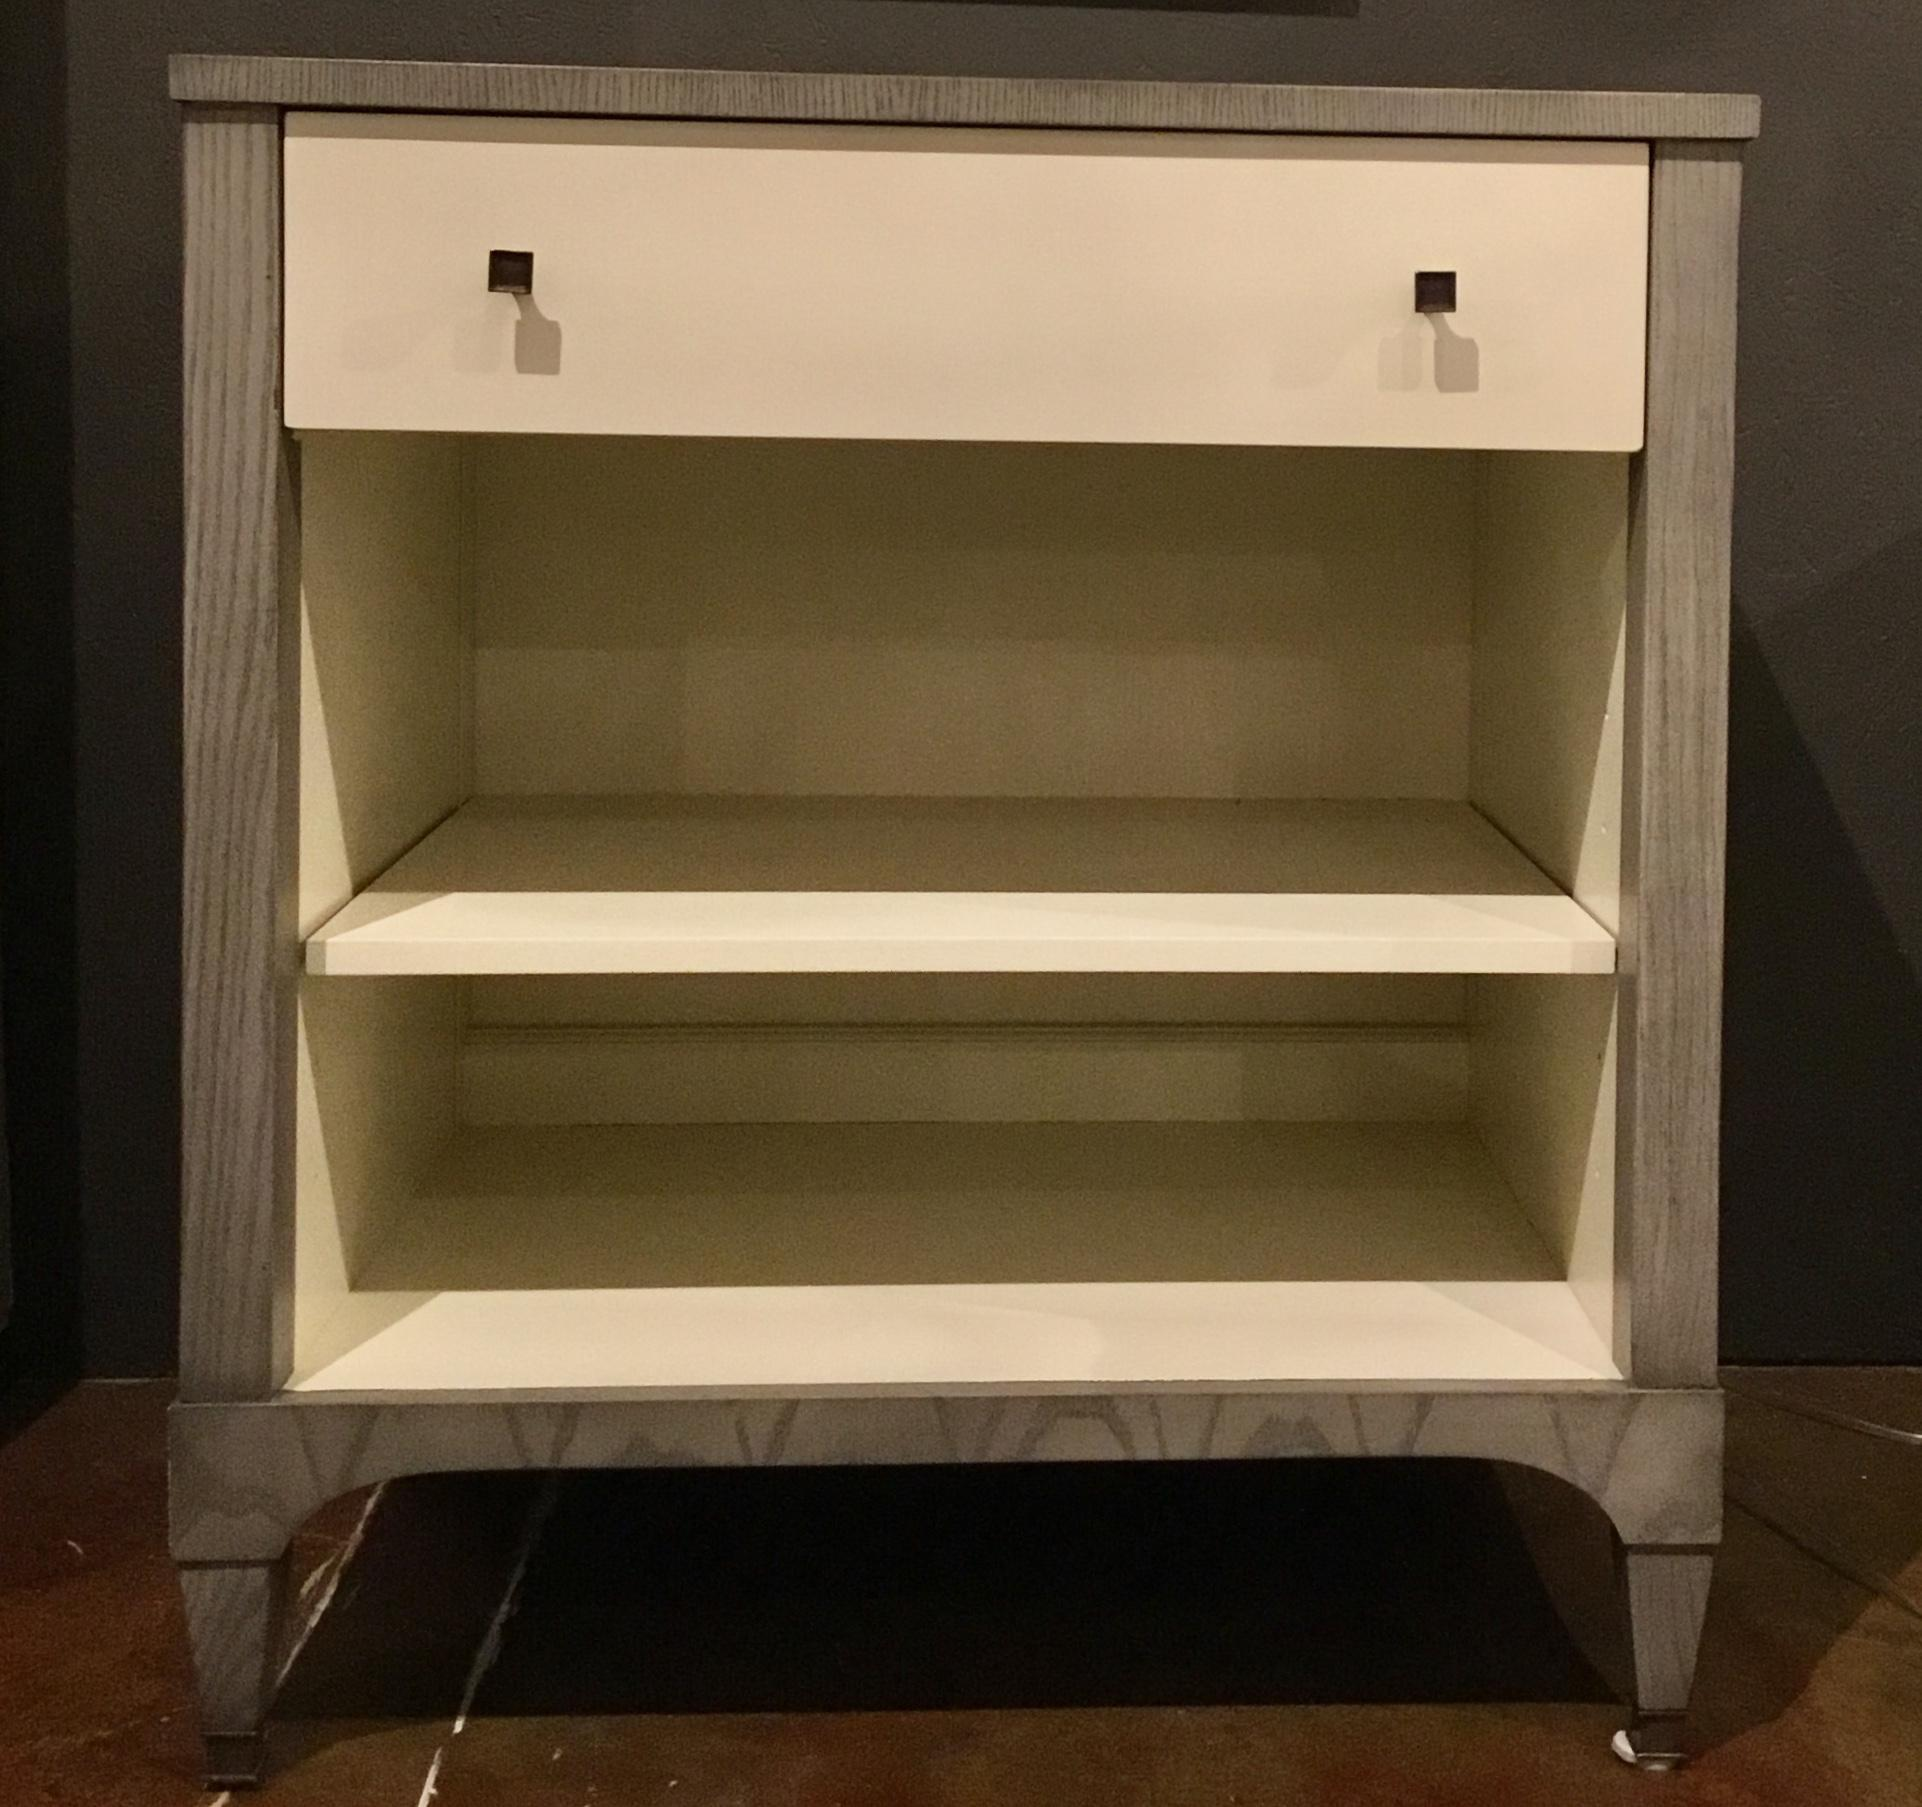 Pair Of French Inspired Hickory Chair Artisan Drawer Chests. Finished In  Ash And Ivory With. Contemporary Contemporary Hickory Furniture Co.